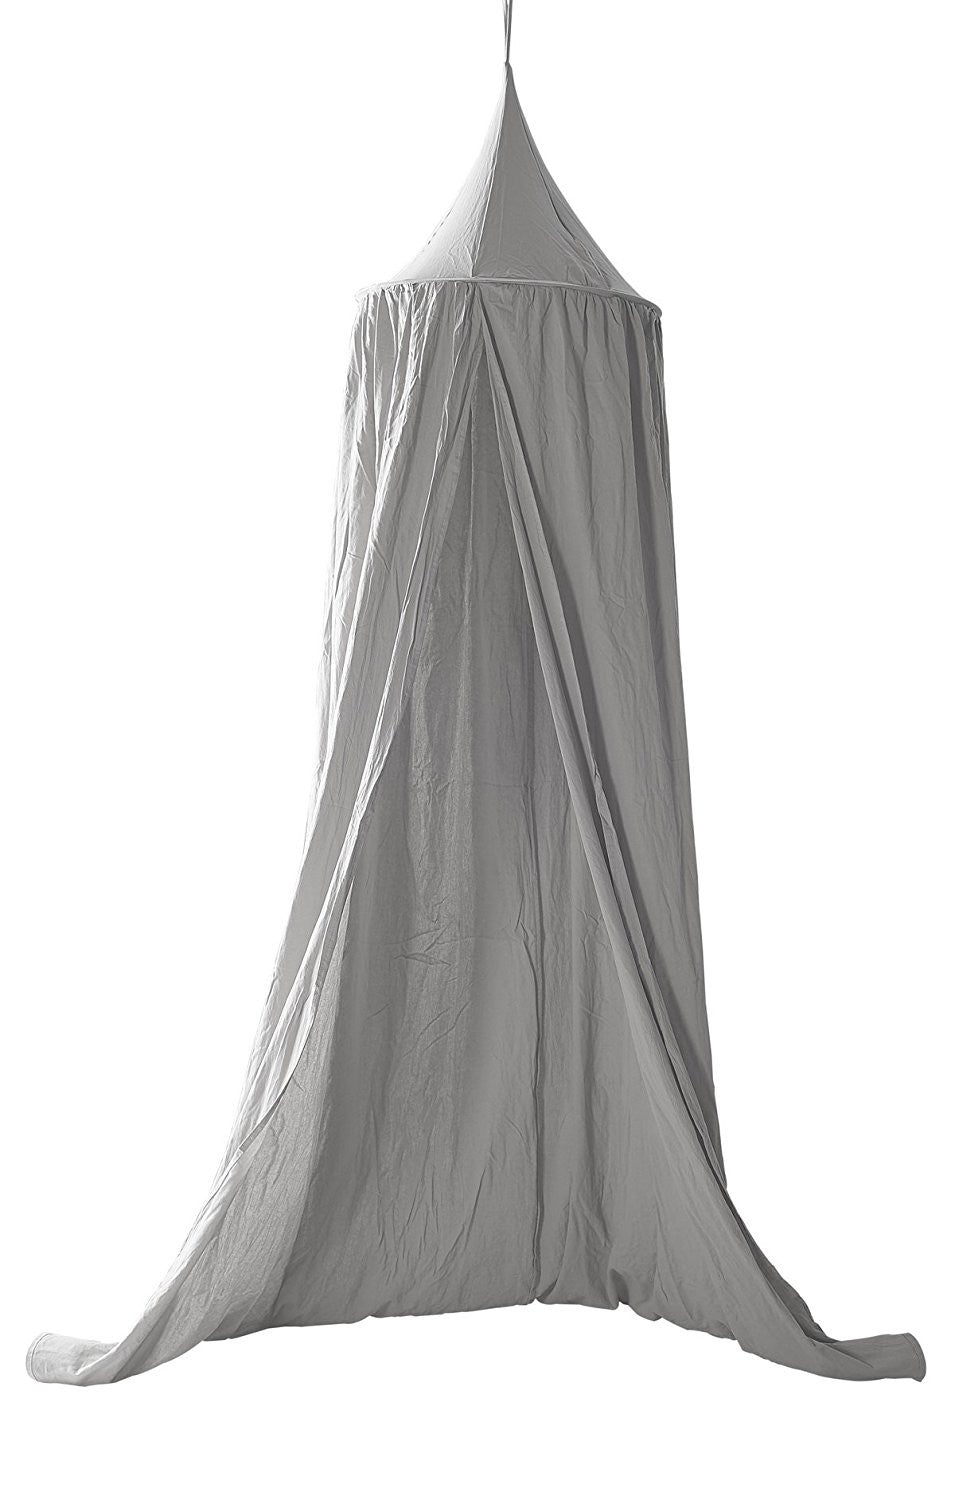 dome princess bed canopy bed curtain mosquito net for children room decorationgrey - Gray Canopy Decoration